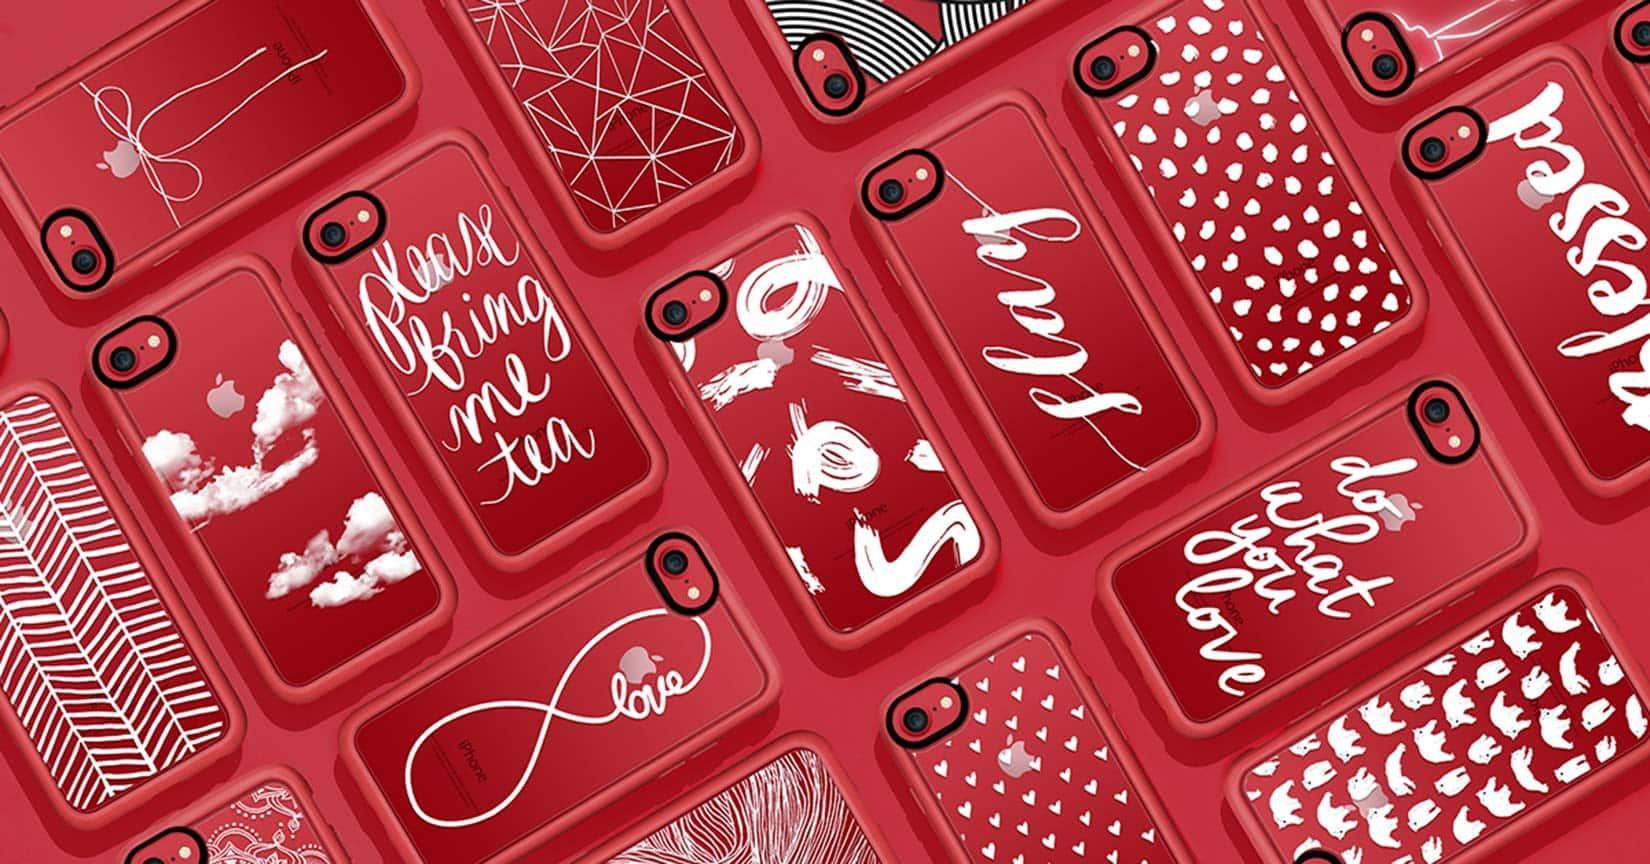 These Cases Will Protect Your Red Iphone Without Covering The Color Cult Of Mac